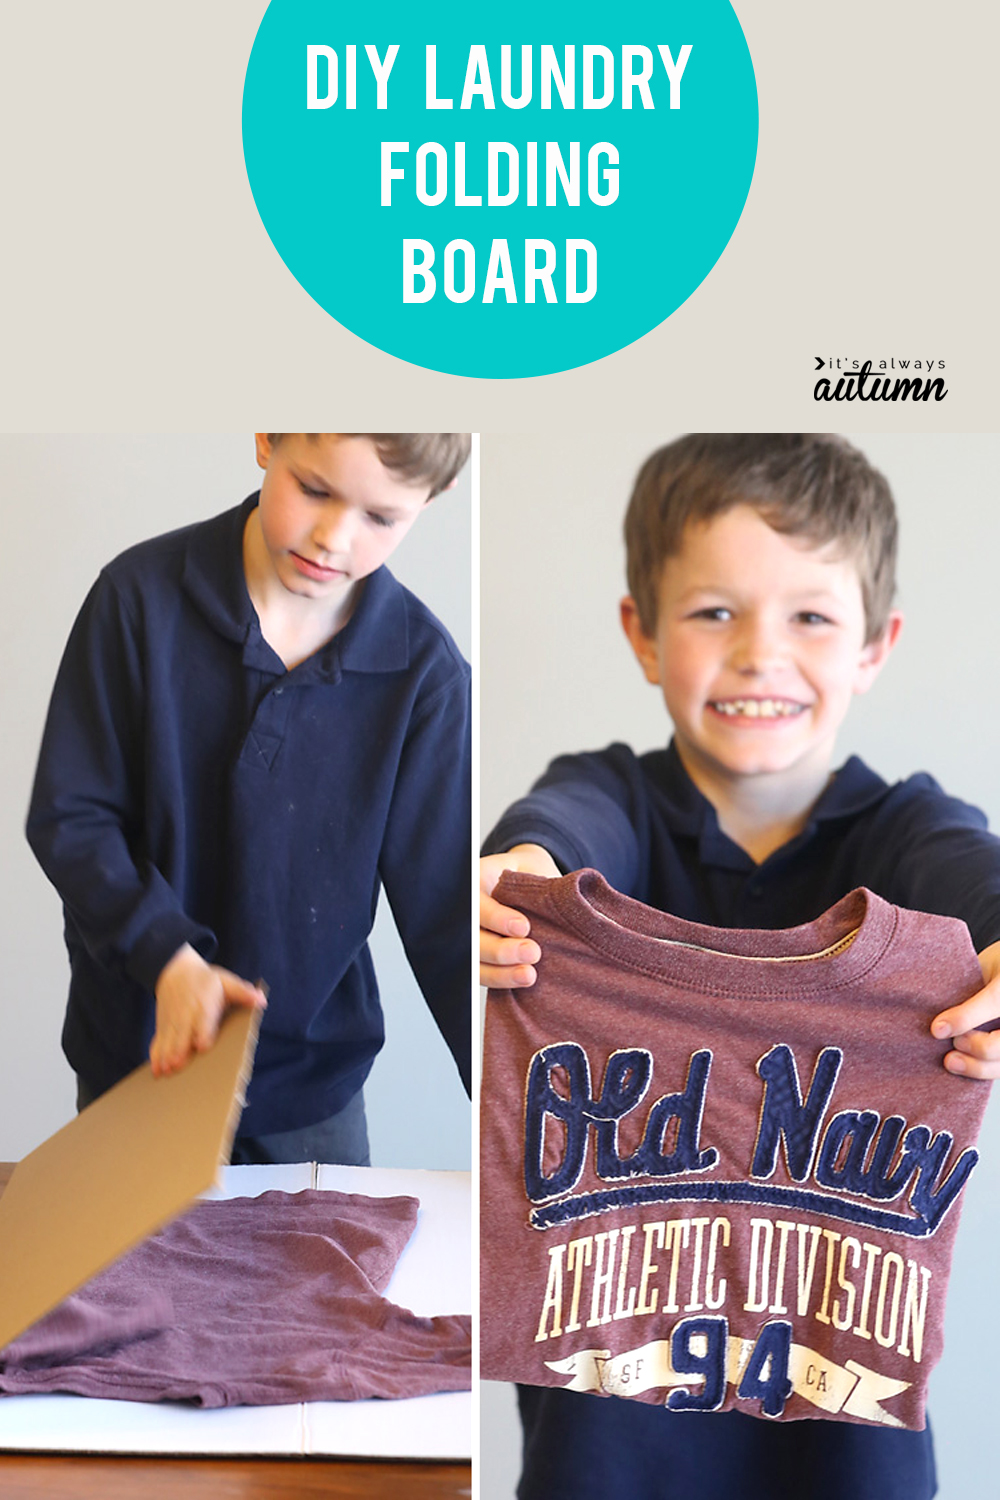 This is so smart! Make your kids a simple laundry folding board out of cardboard so they can learn to fold their clothes!